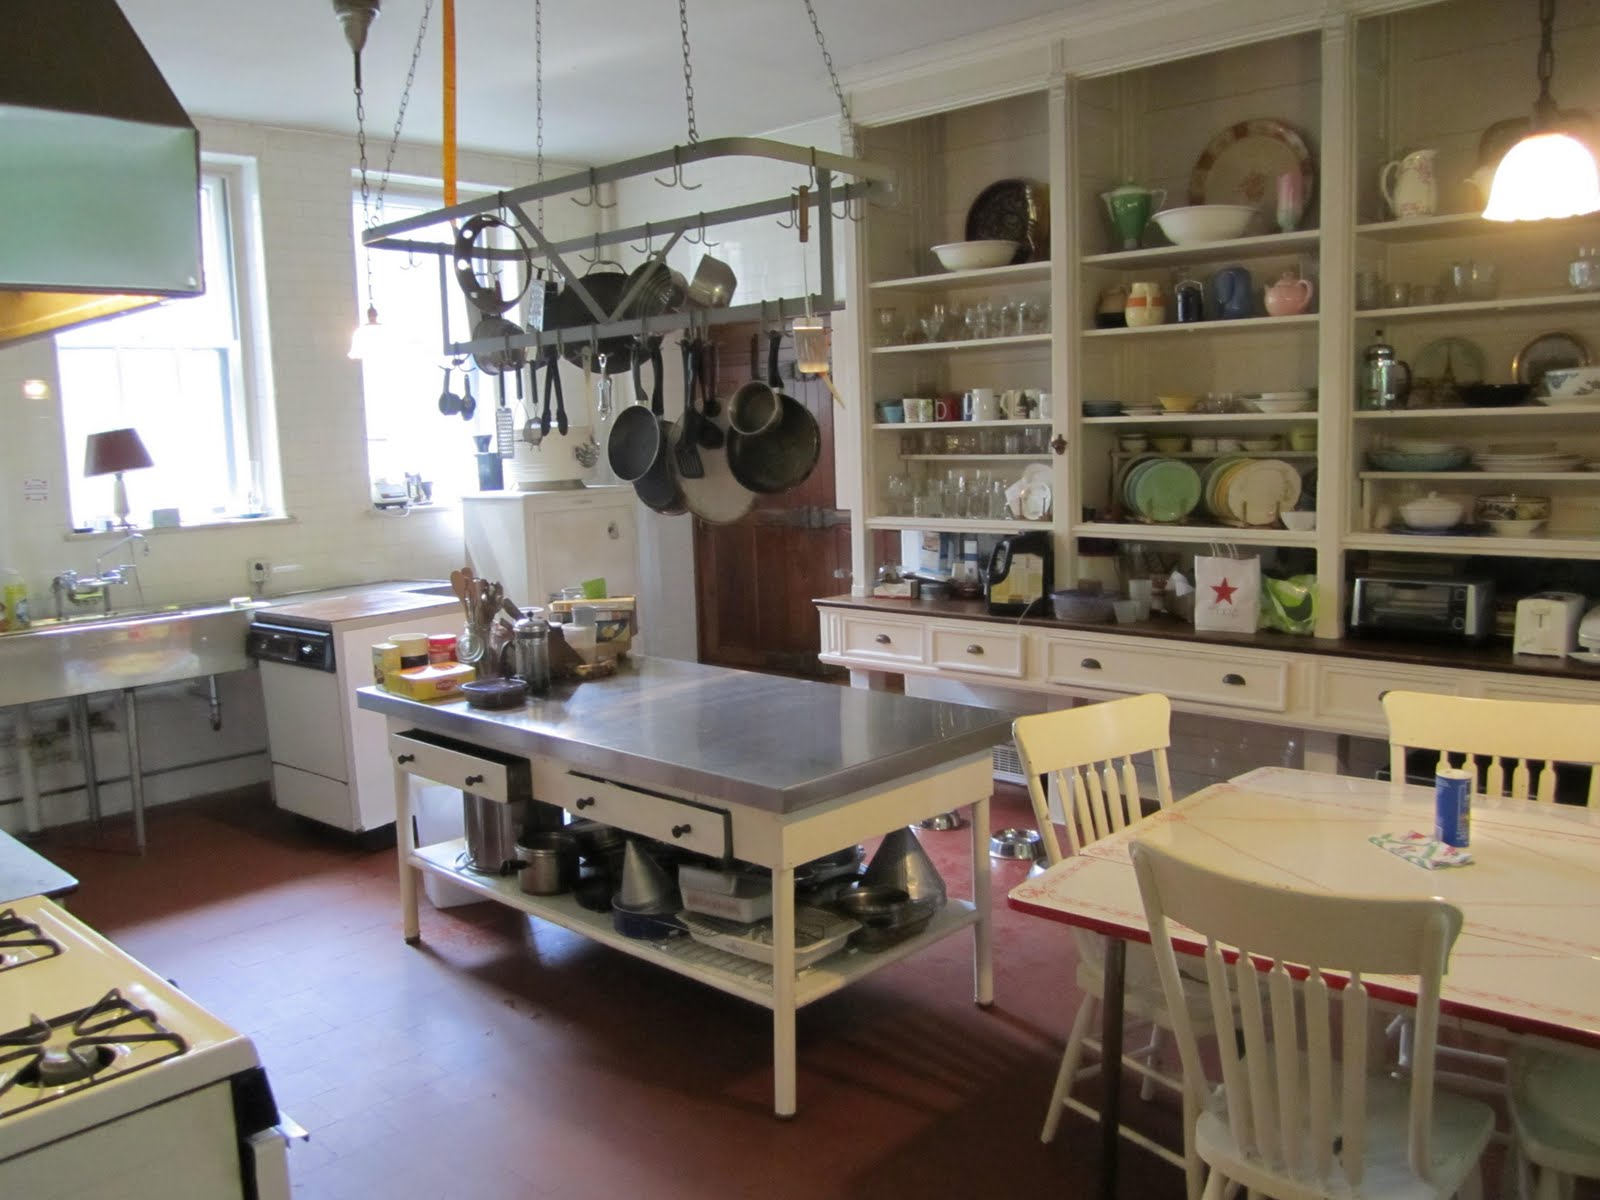 my kitchen 1 of 2 kitchen prep table My Kitchen 1 of 2